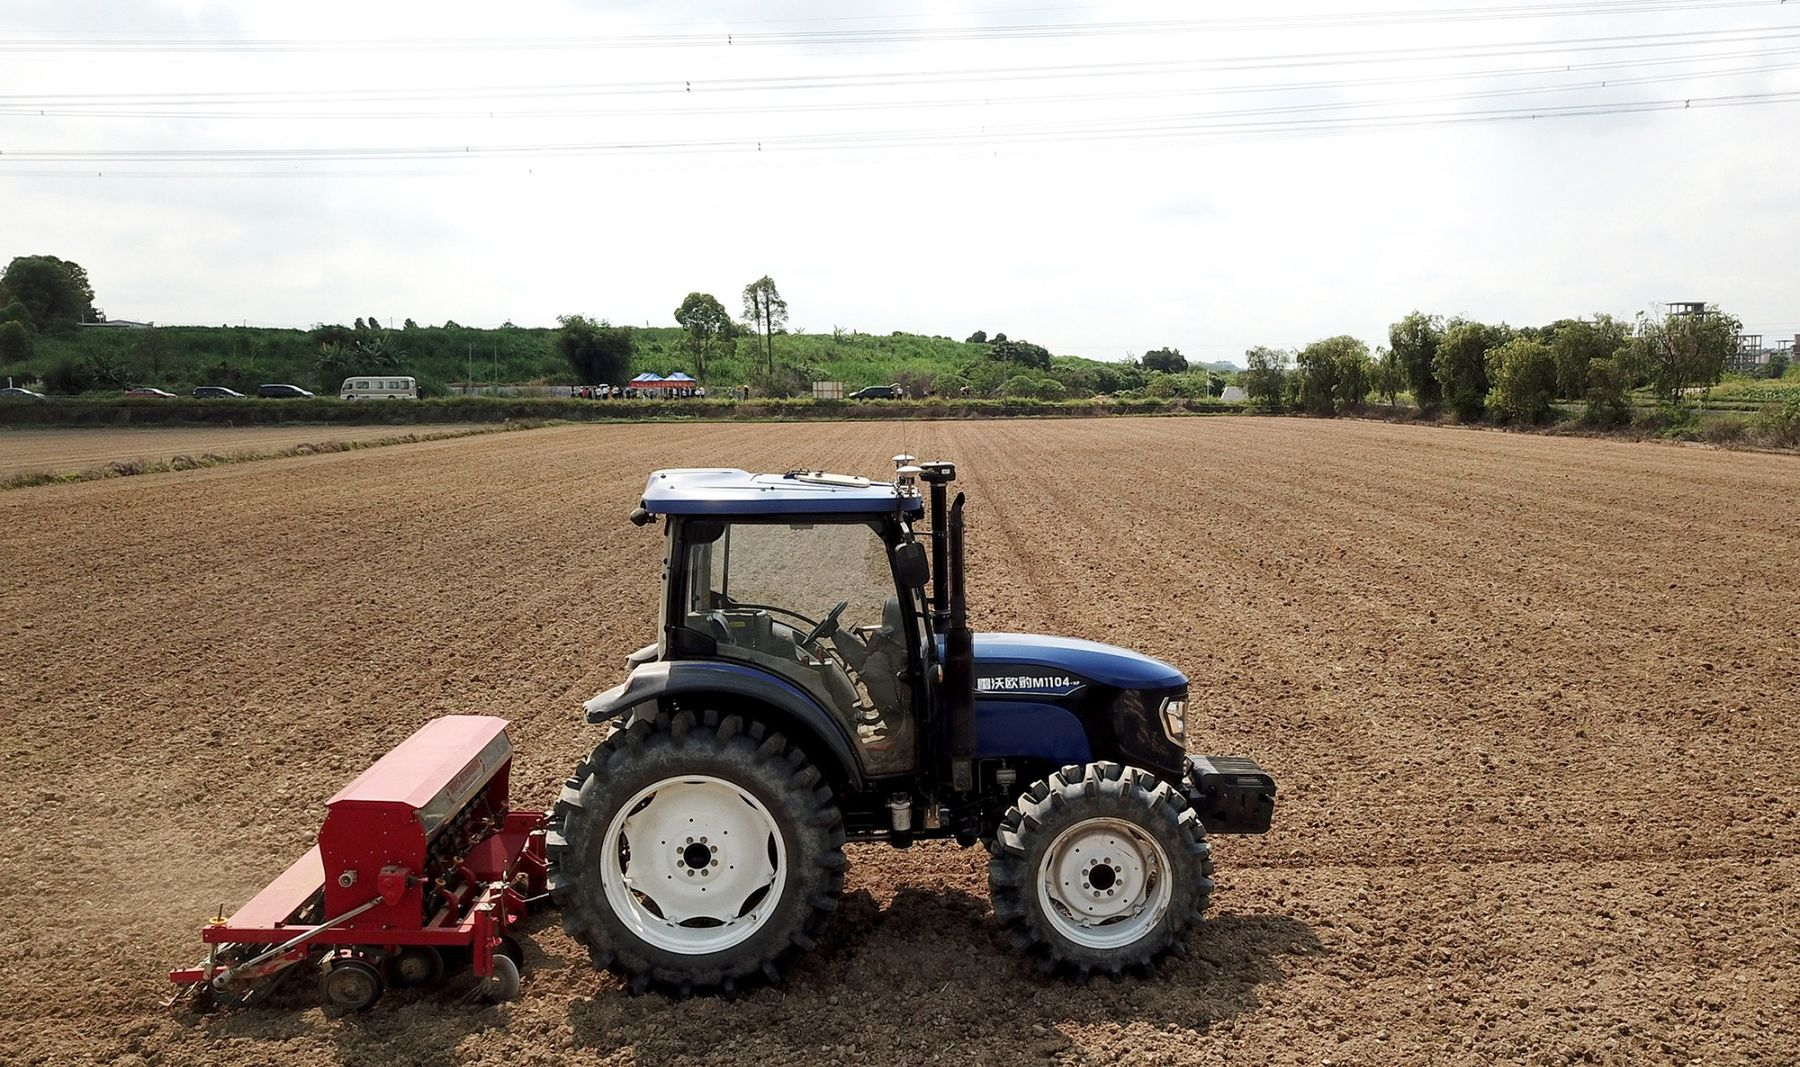 Driverless Tractors Are Getting Ready for Harvest Season